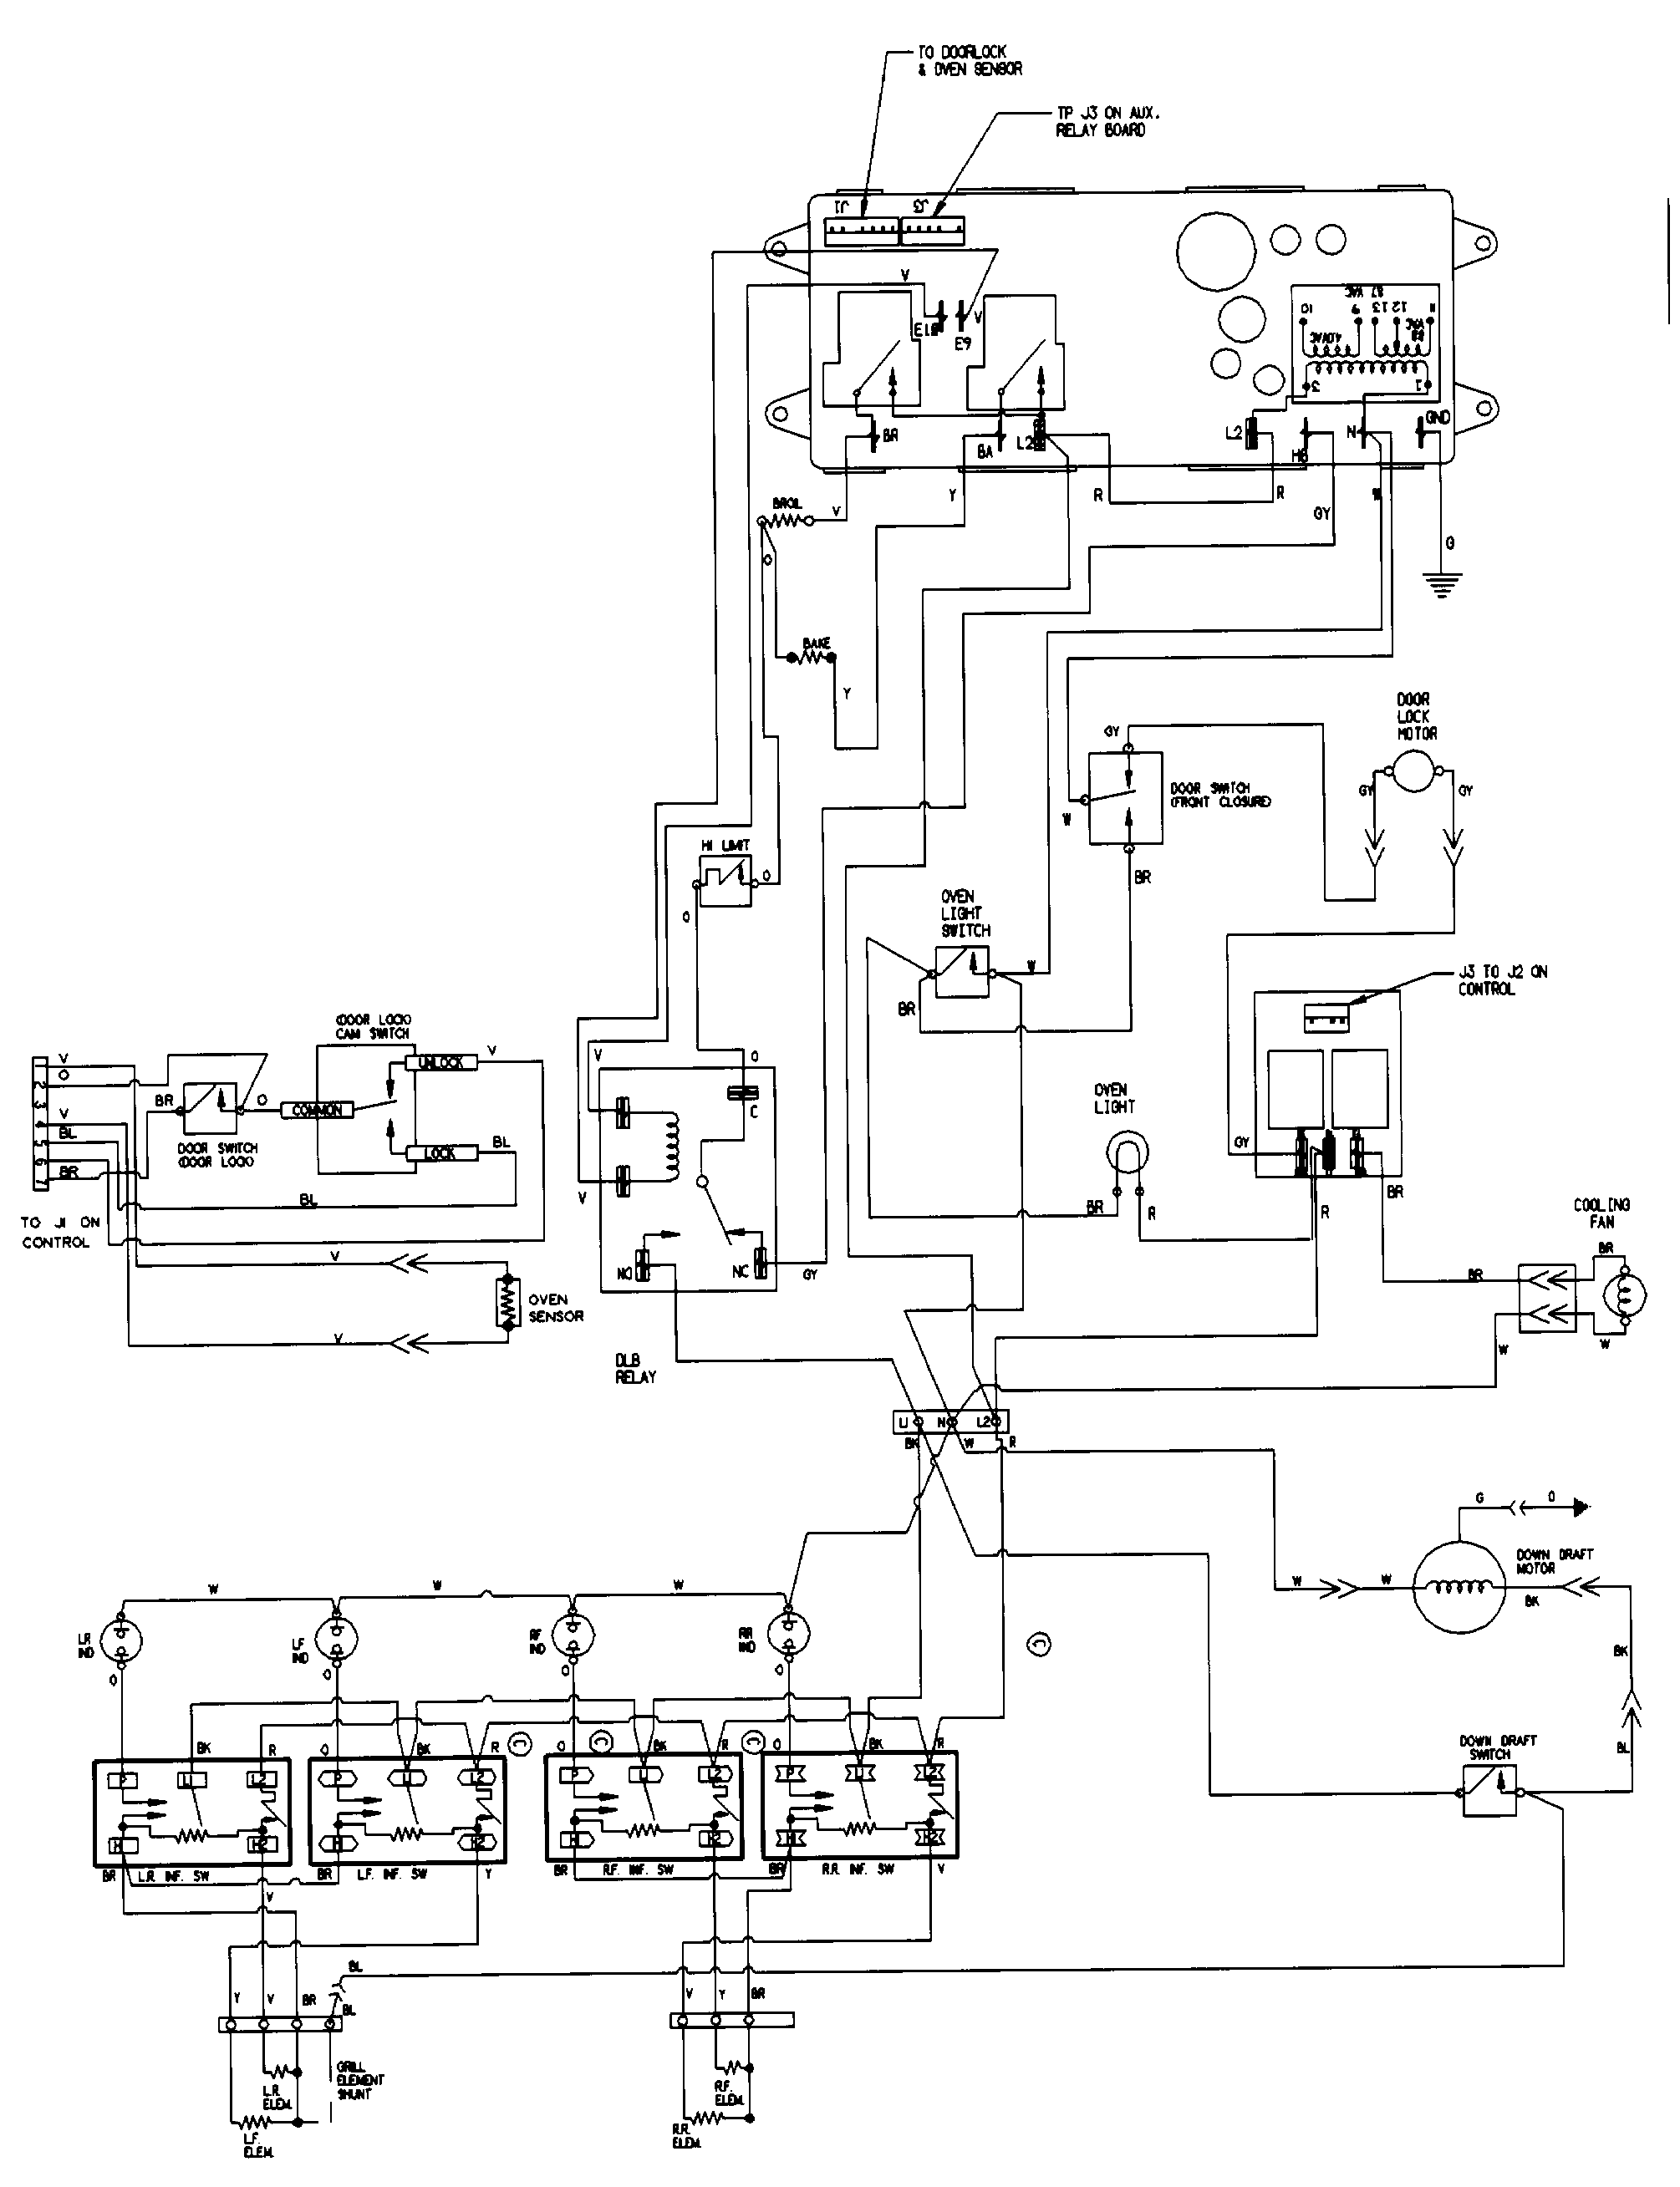 washer timer control wiring diagram with Kitchenaid Gas Dryer Wiring Diagram on Kitchenaid Gas Dryer Wiring Diagram further Washer Wire Diagram also Maytag Washer Wiring Diagram likewise Index further Whirlpool Door Ice Maker Schematic Diagram.